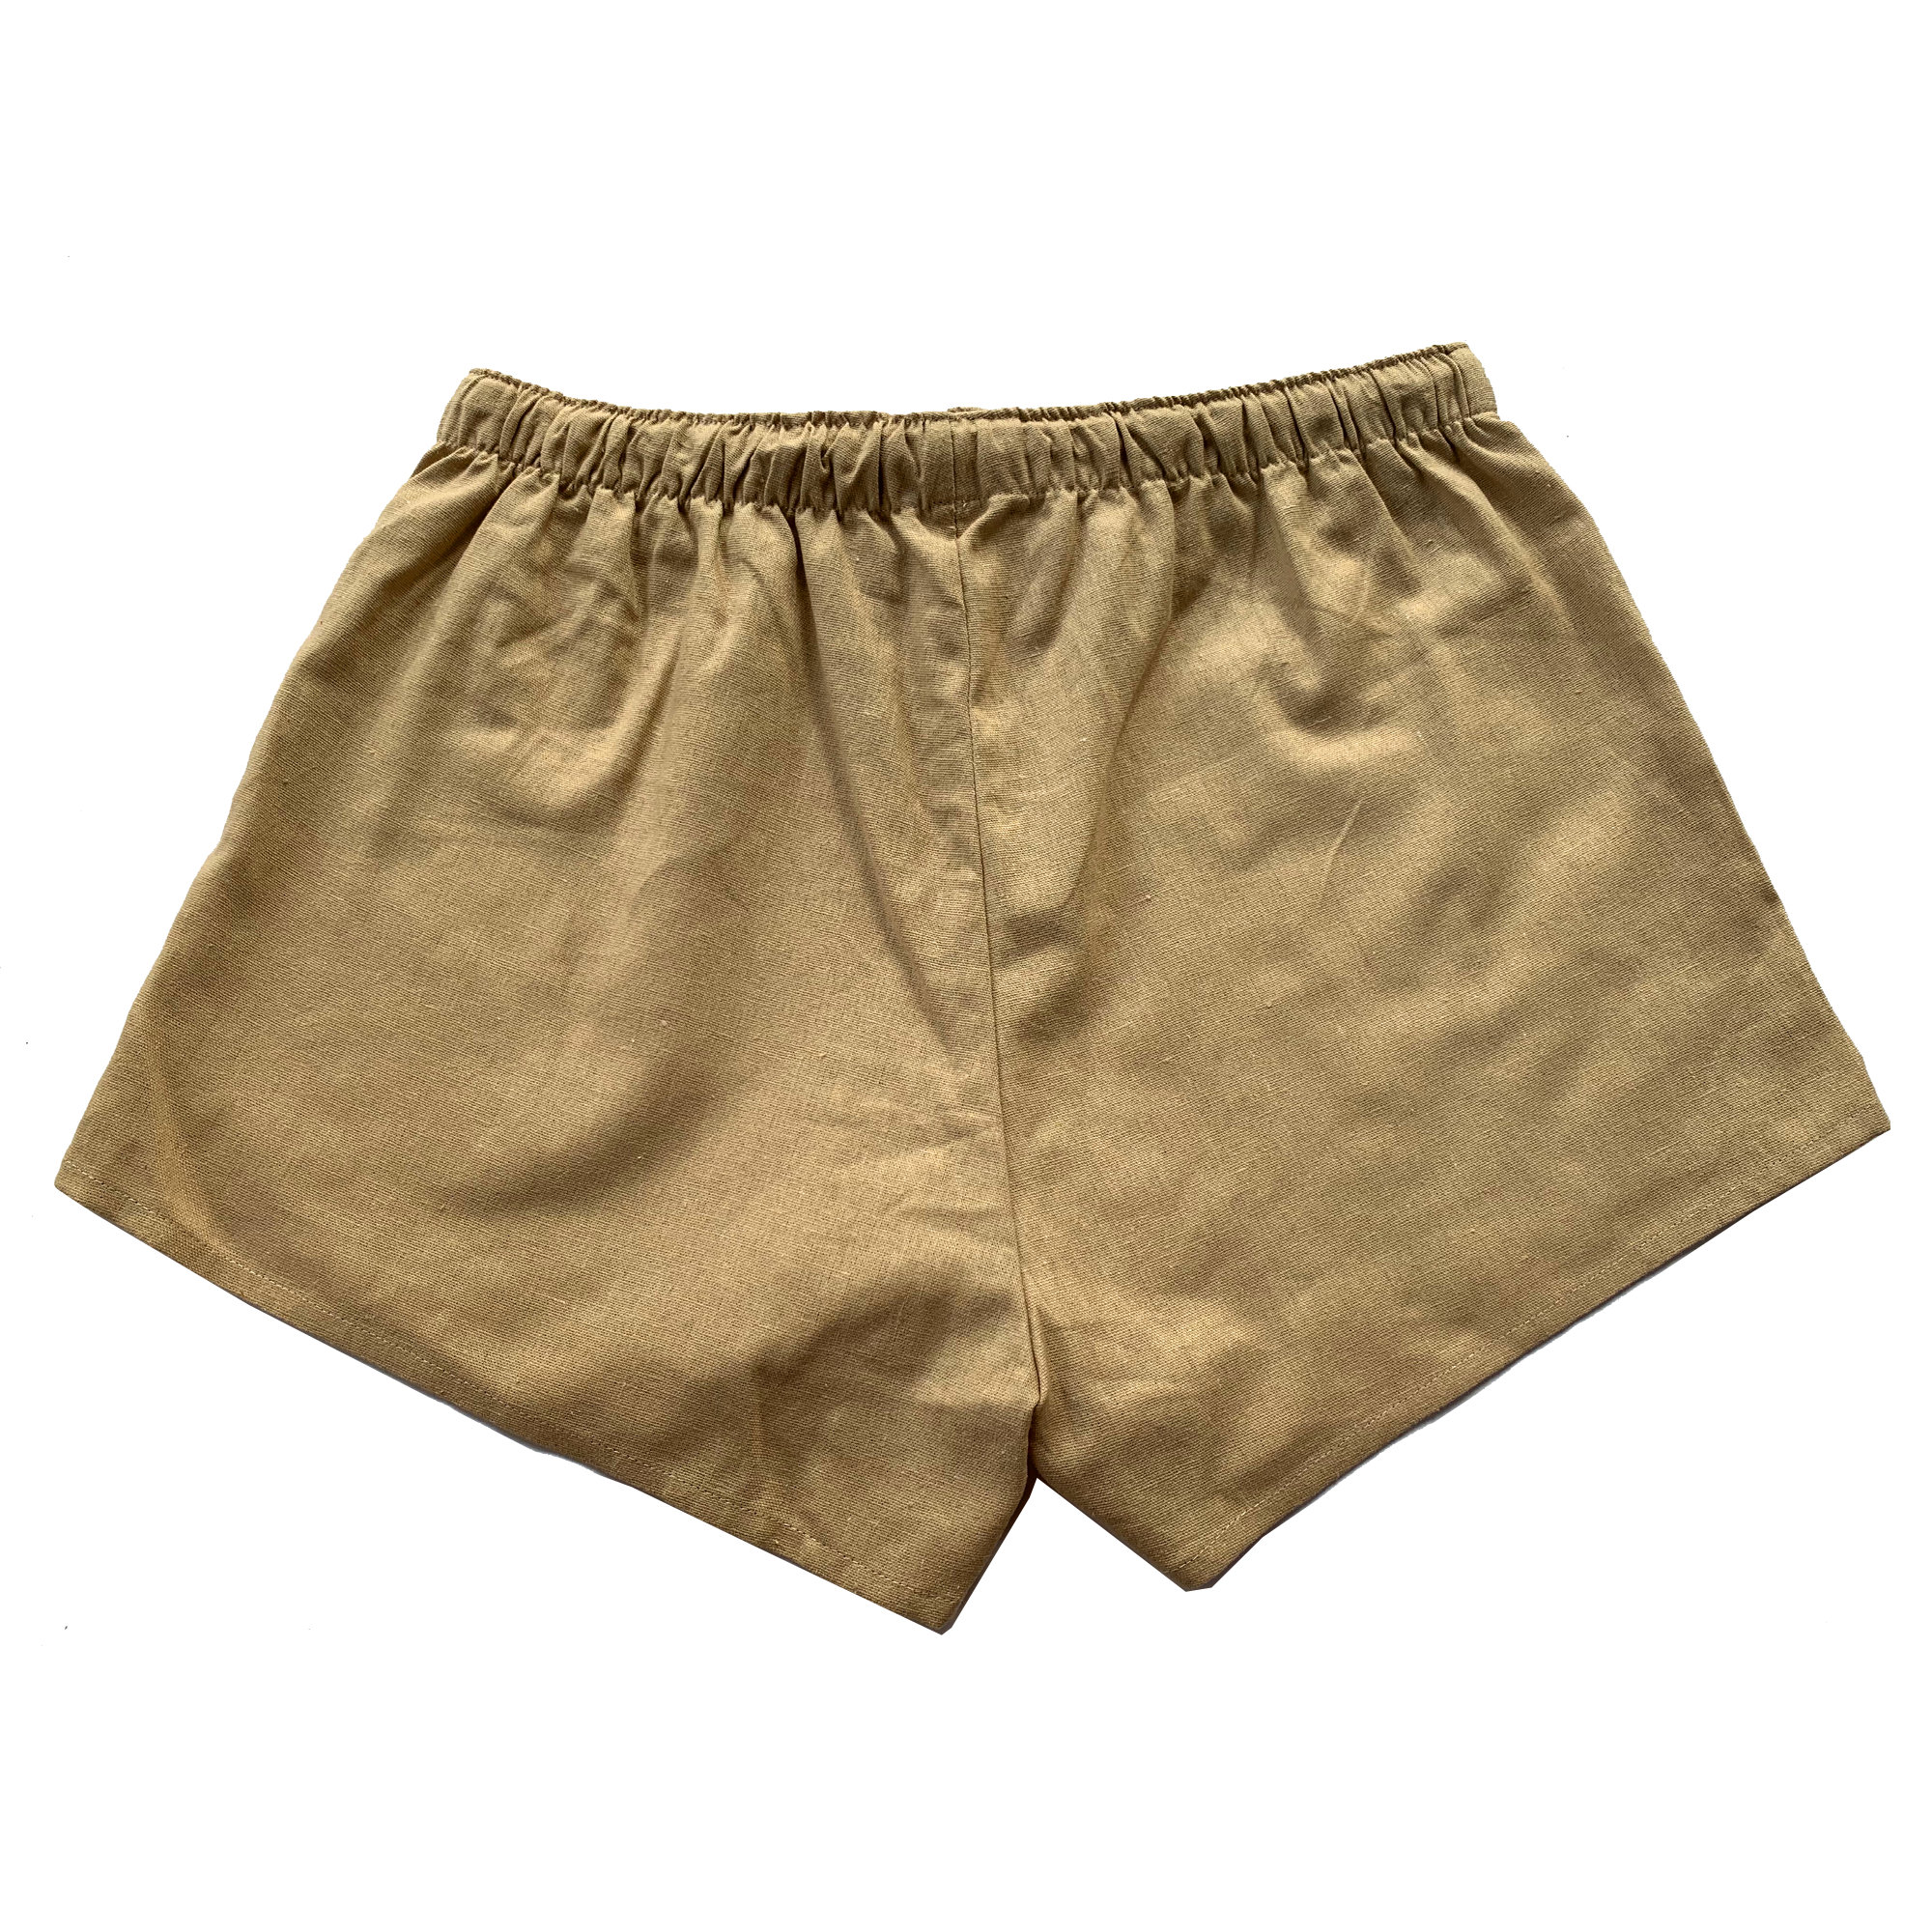 Ladies Linen Short with Elastic Waistband and Drawstring